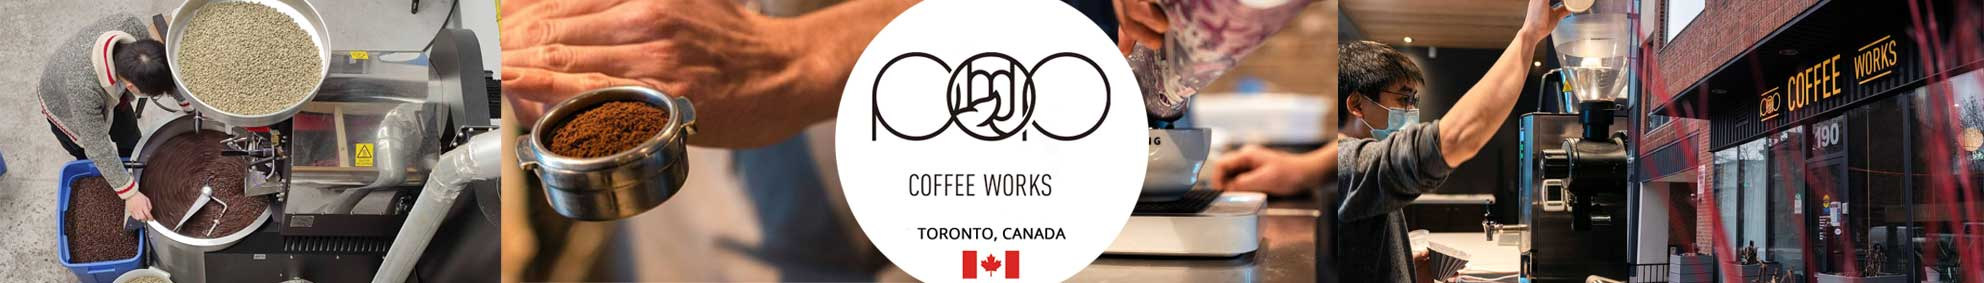 Pop Coffee Canada UK Best Coffee Subscription